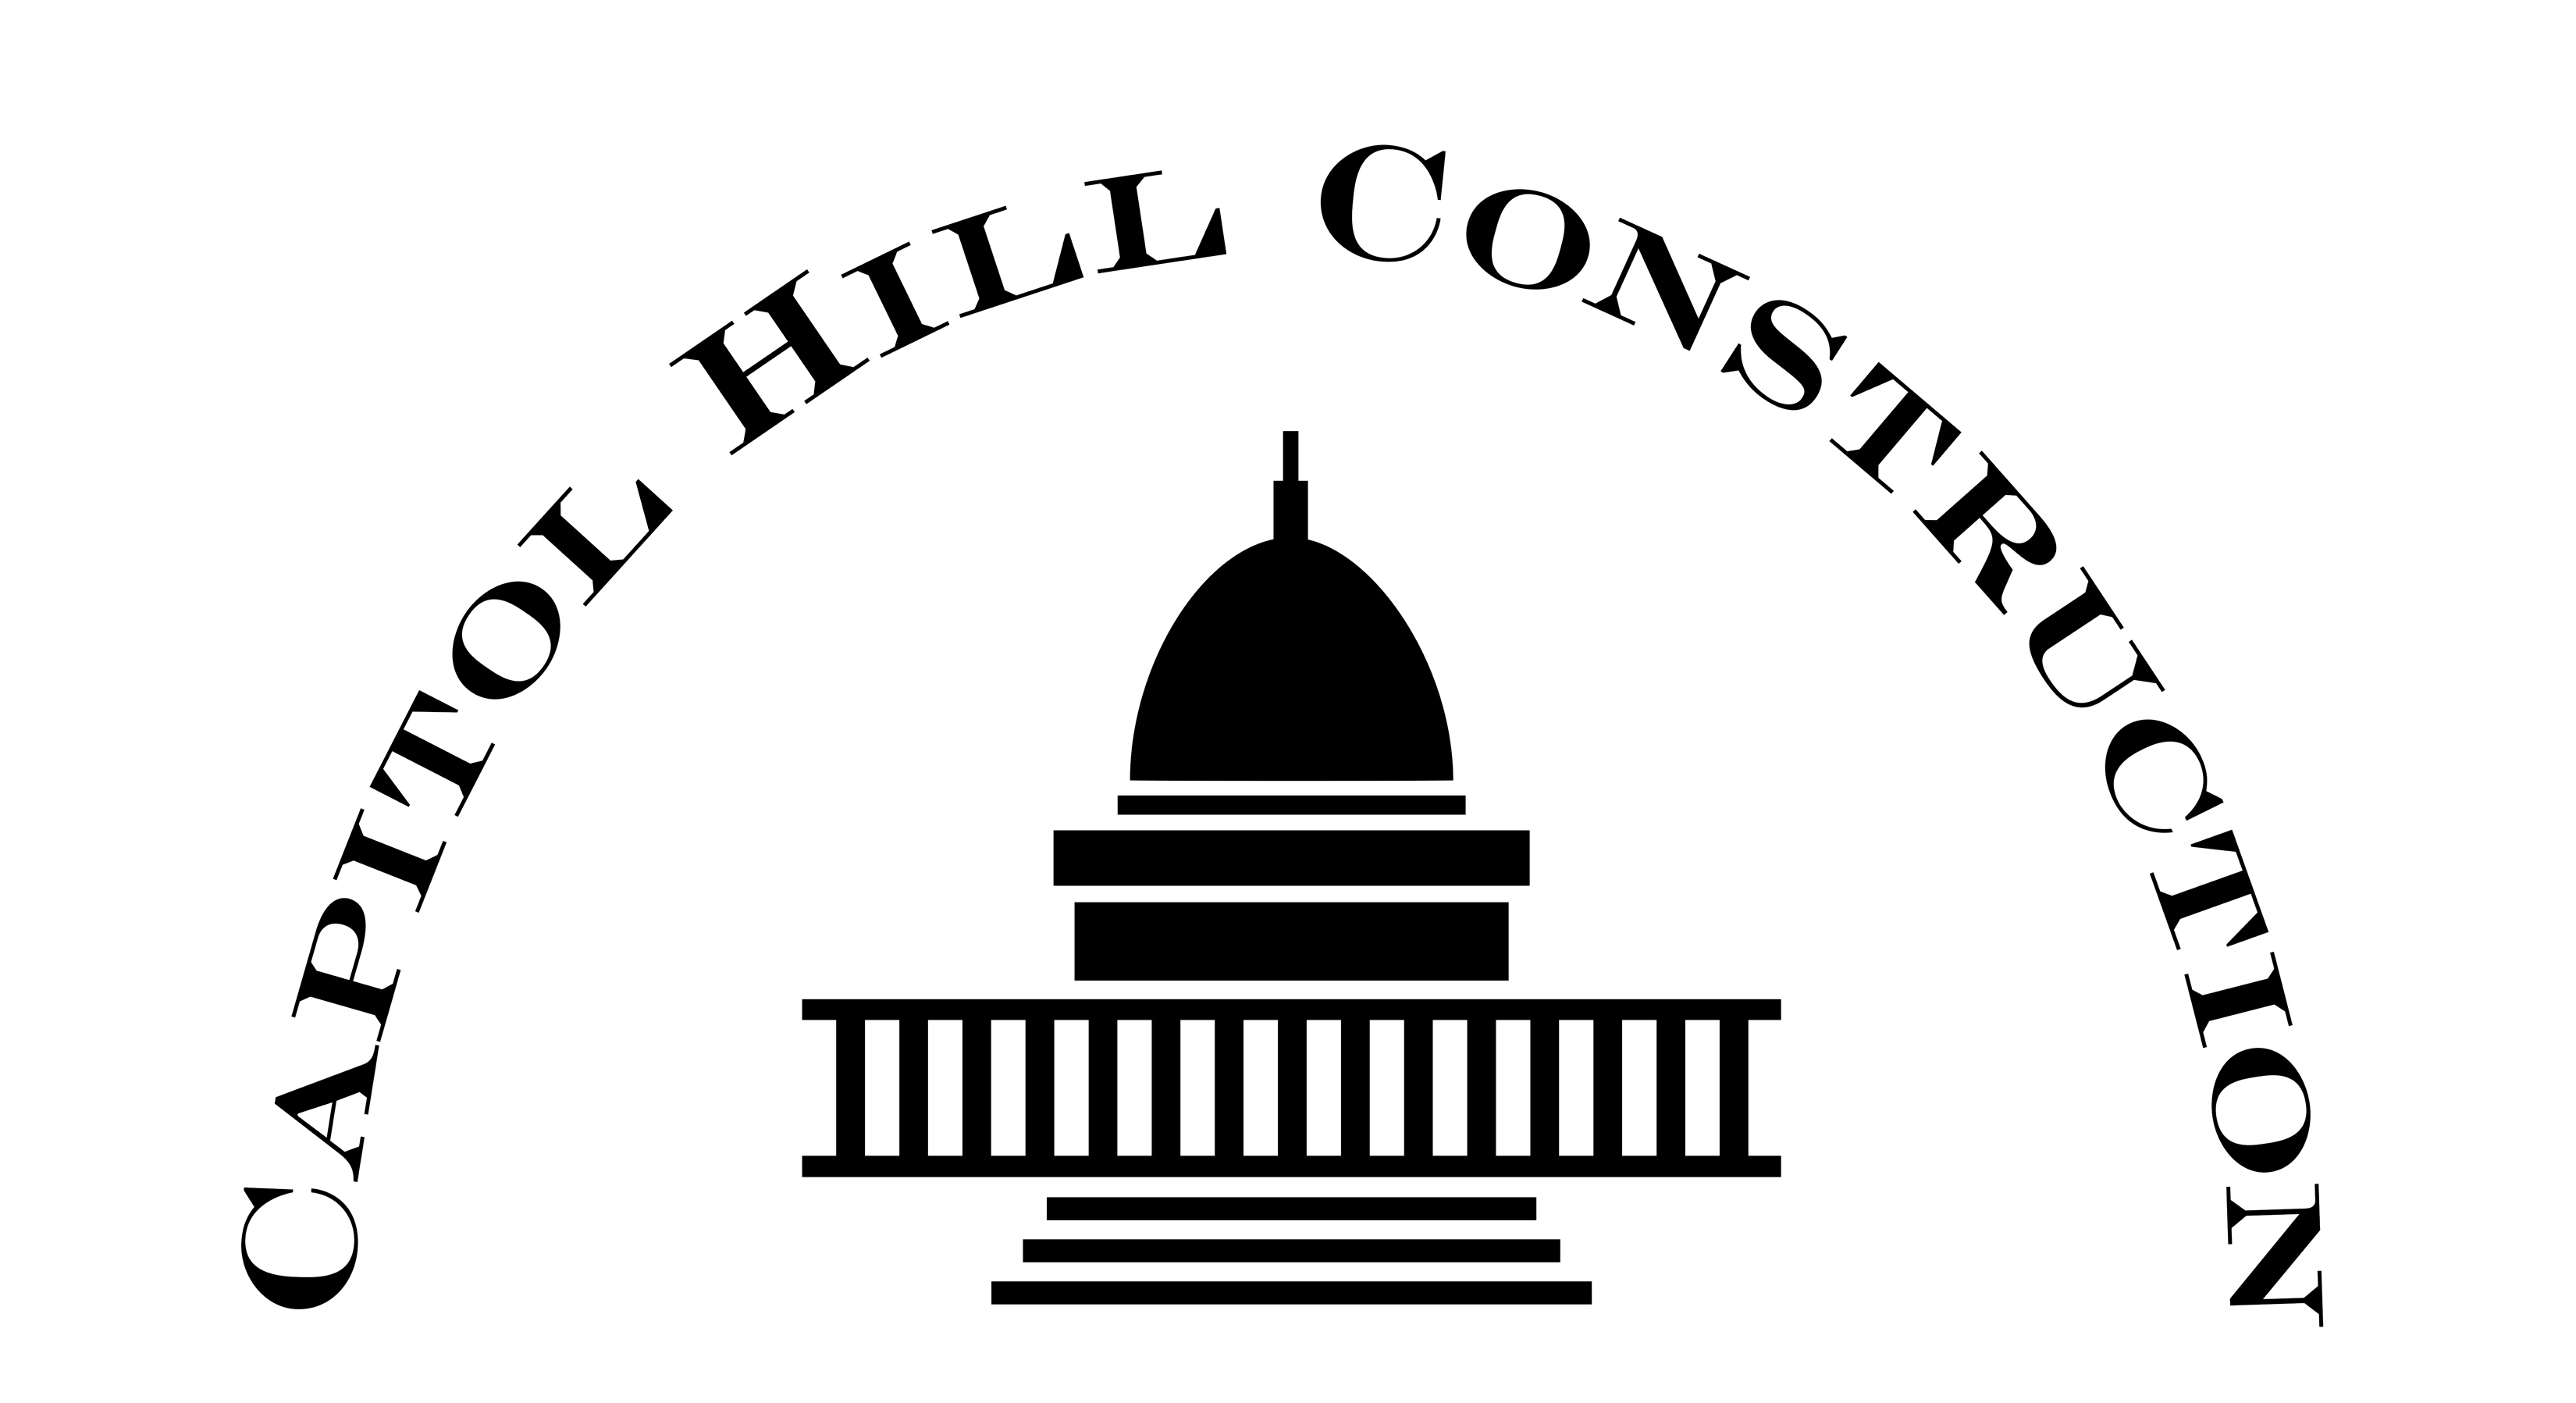 Capitol Hill Construction logo 2010